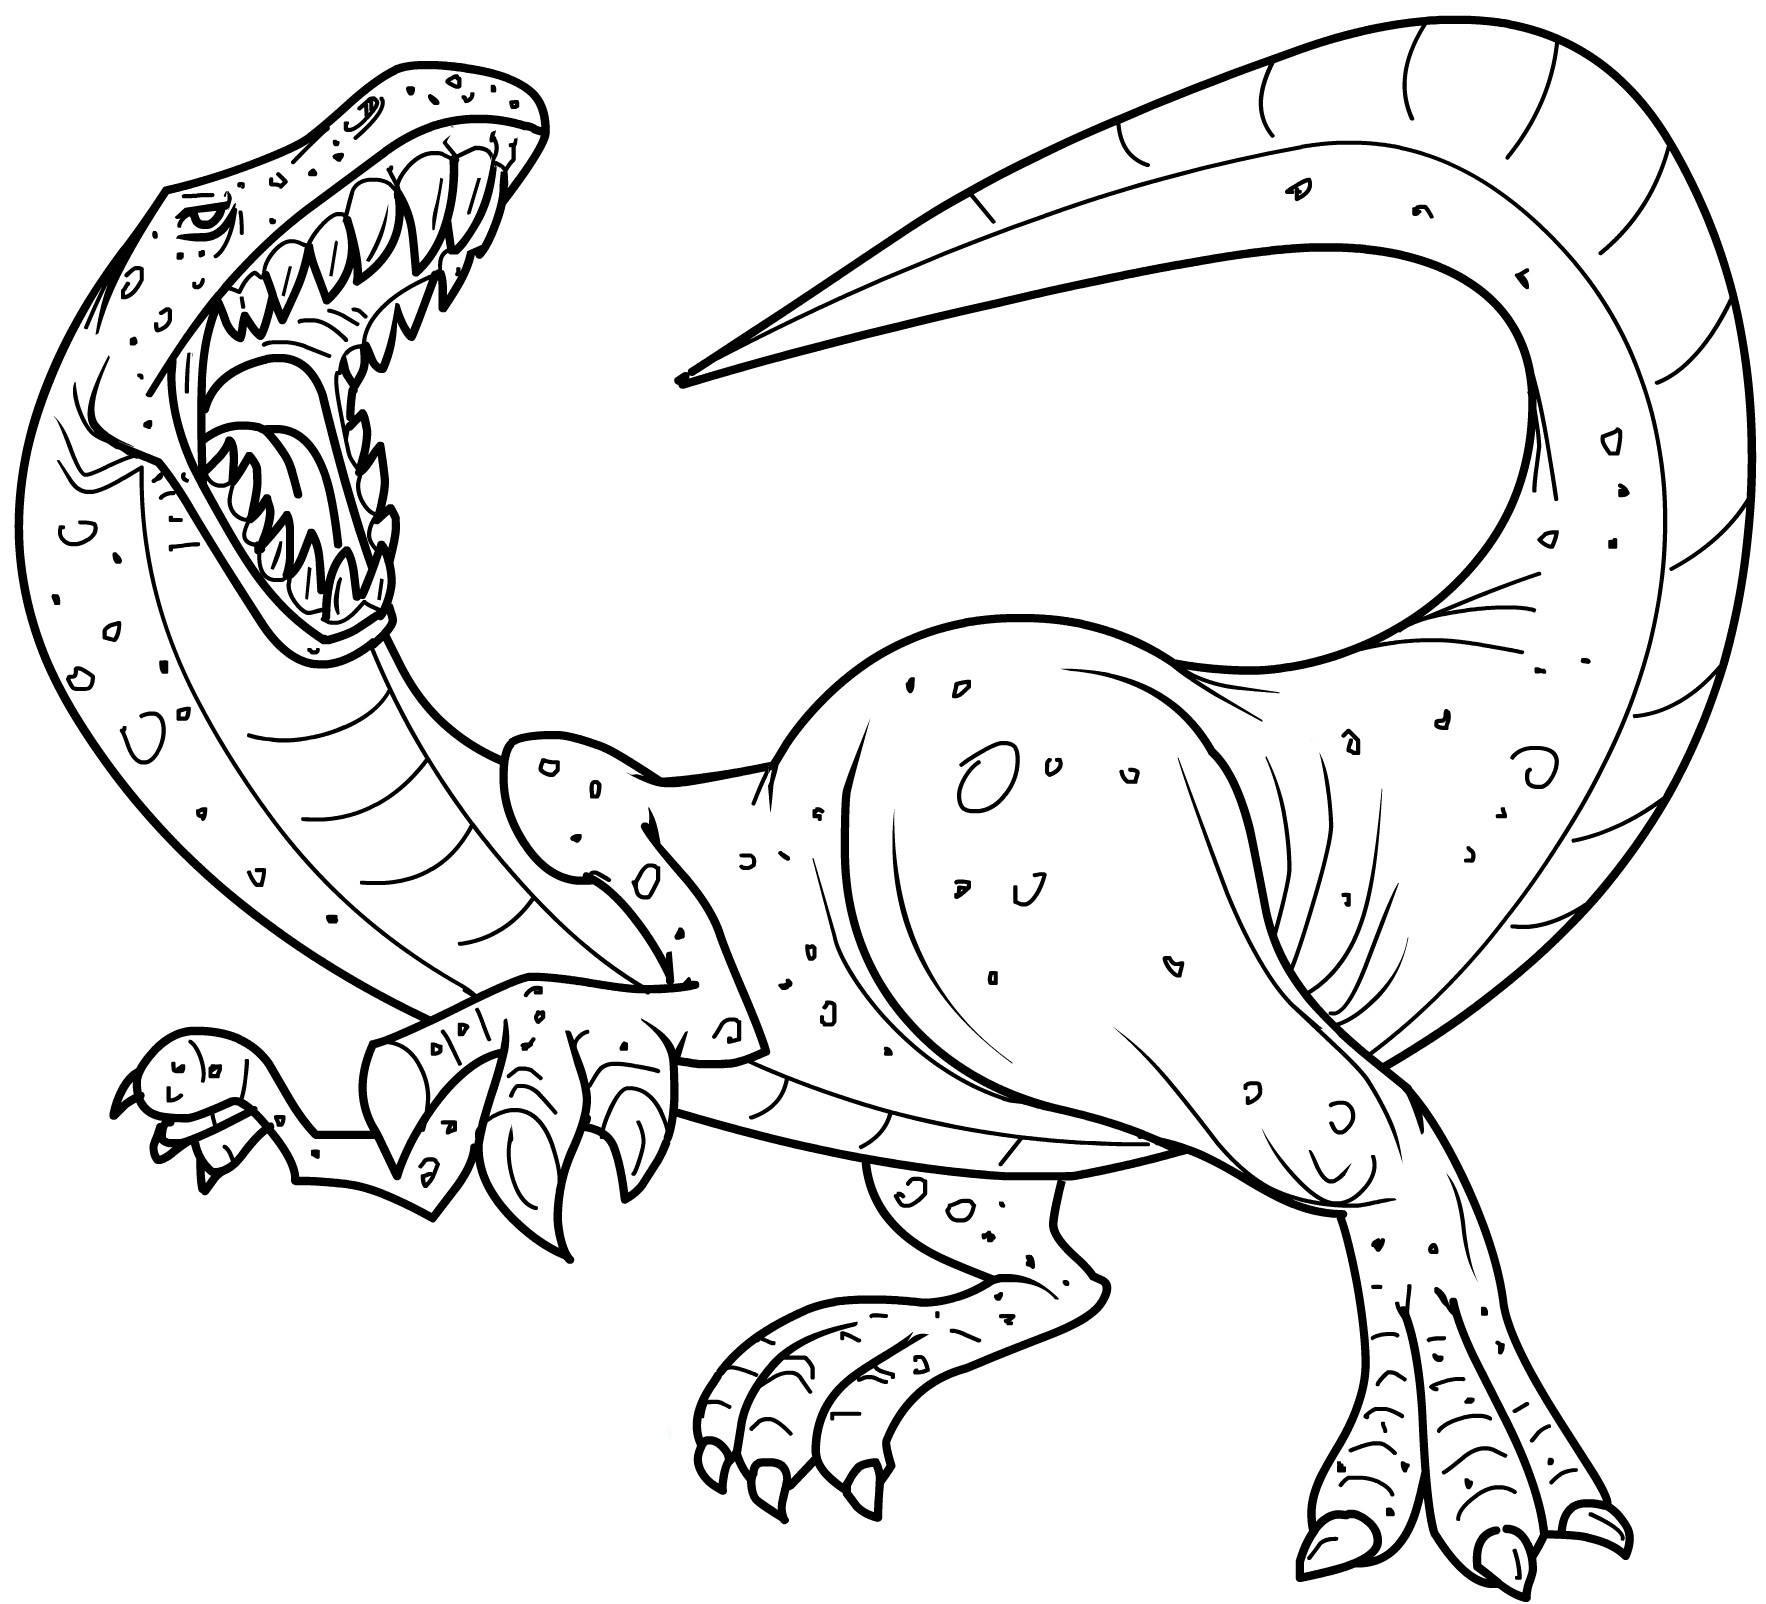 free dinosaur coloring pages coloring pages dinosaur free printable coloring pages pages dinosaur free coloring